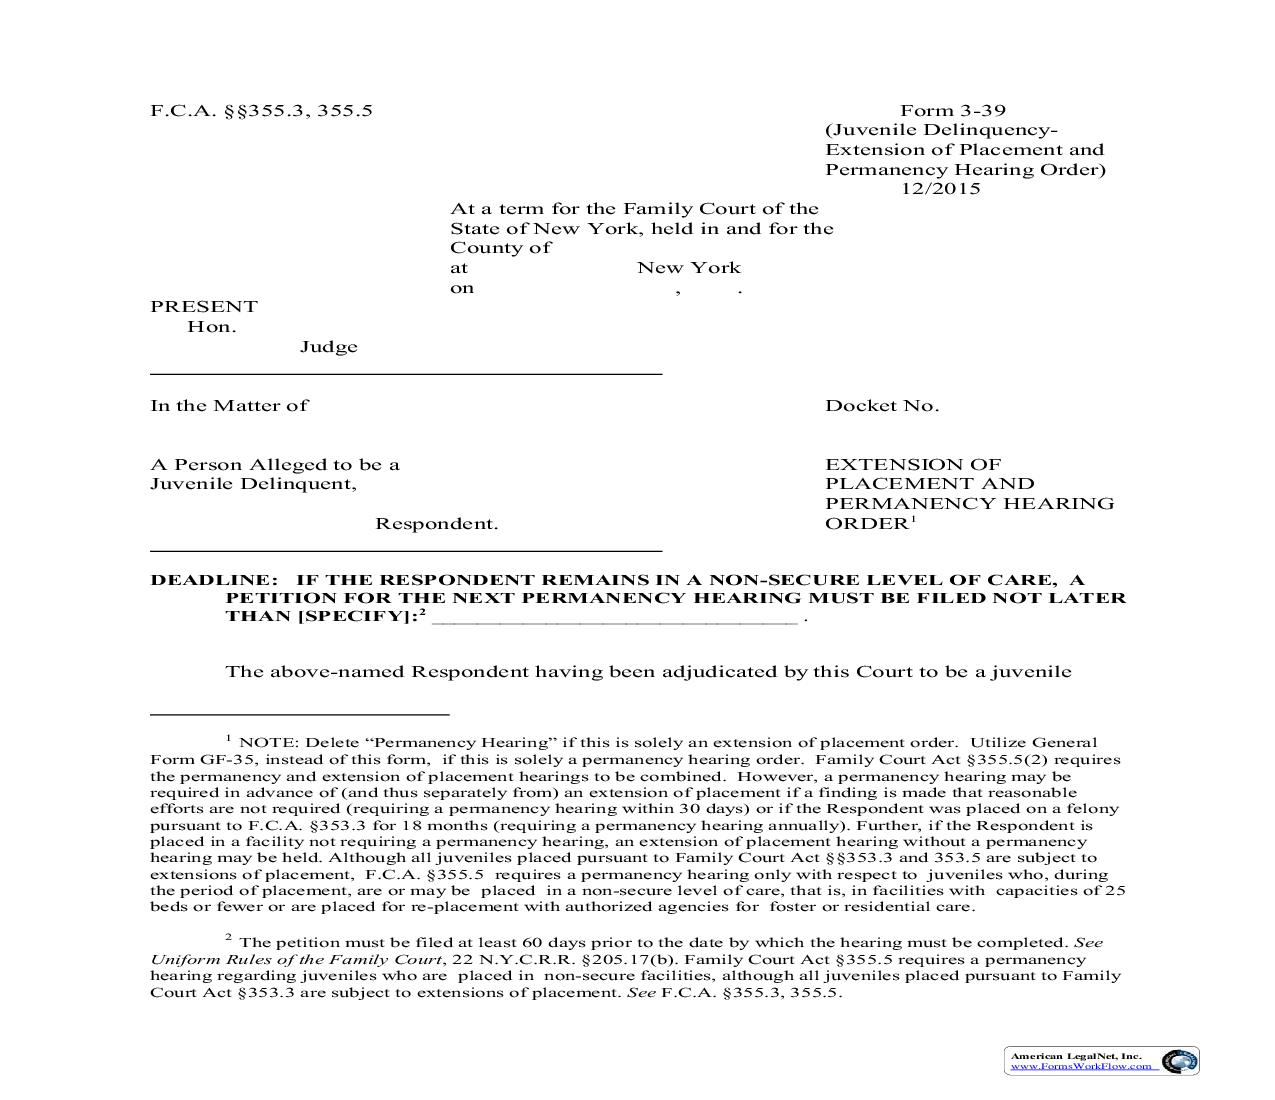 Extension Of Placement And Permanency Hearing Order {3-39}   Pdf Fpdf Doc Docx   New York